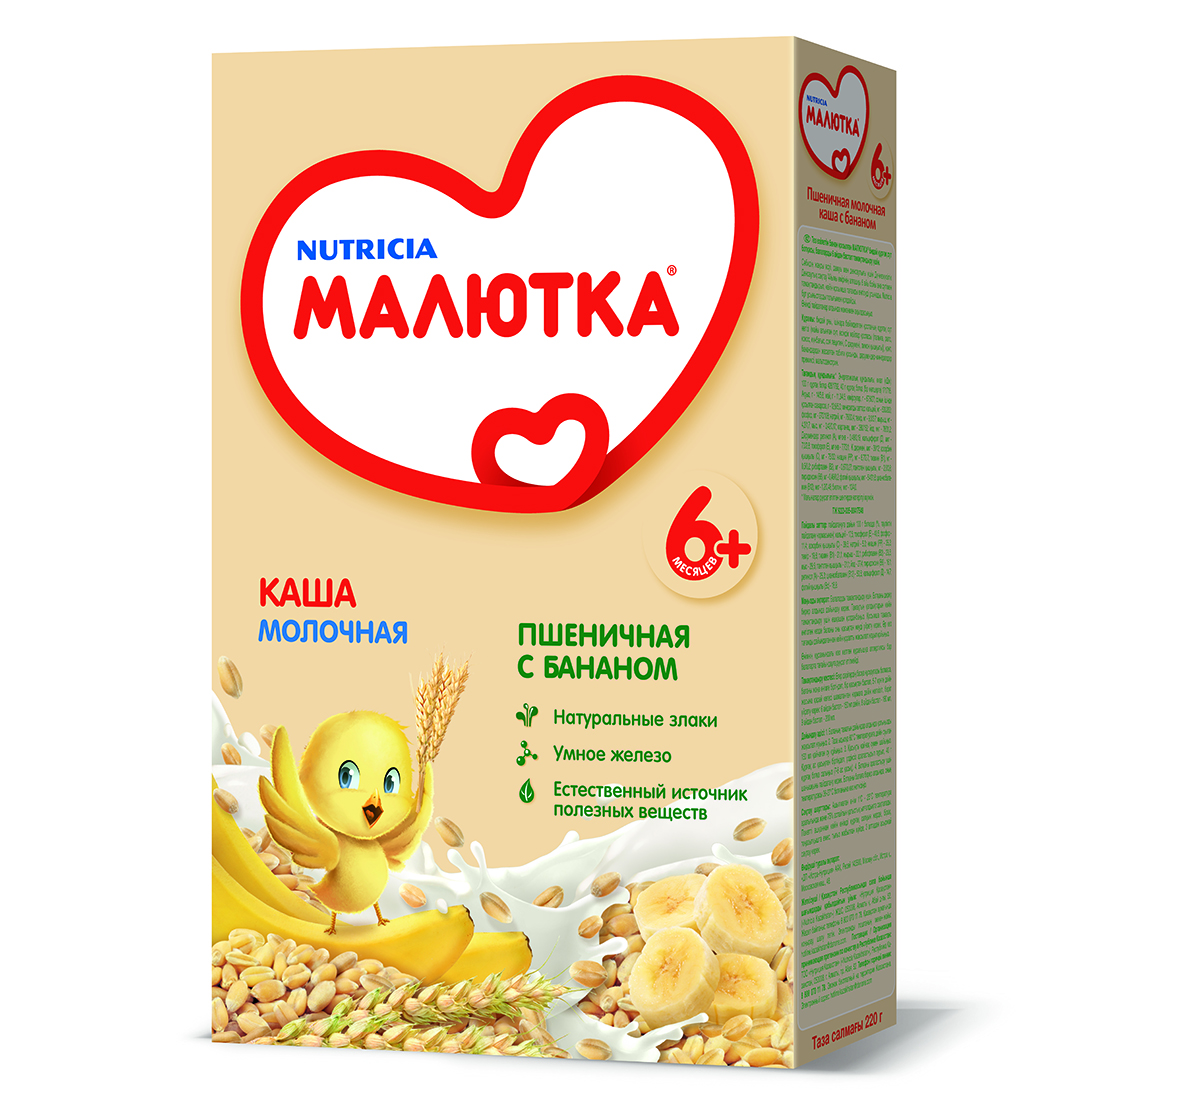 malyutka_new_package_design_01